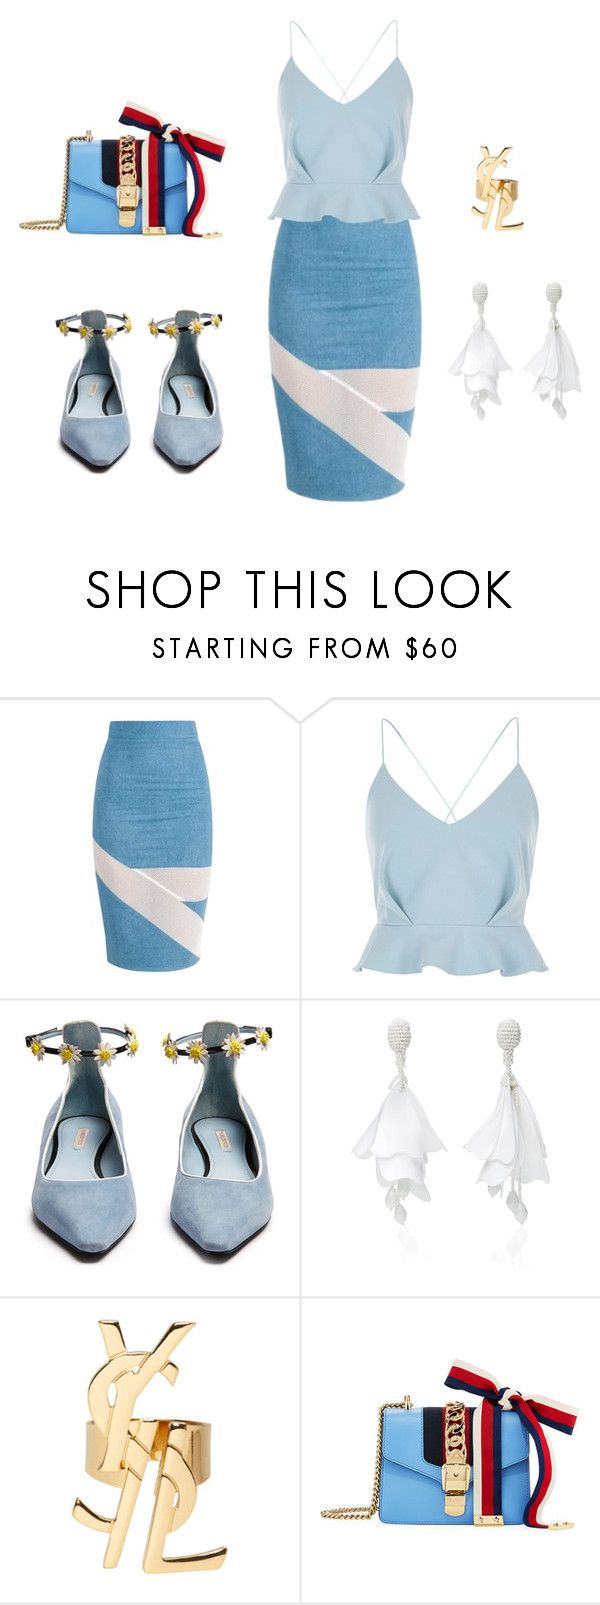 """Untitled #1"" by selena-seulhee-park ❤ liked on Polyvore featuring River Island, Fabrizio Viti, Oscar de la Renta, Yves Saint Laurent and Gucci"